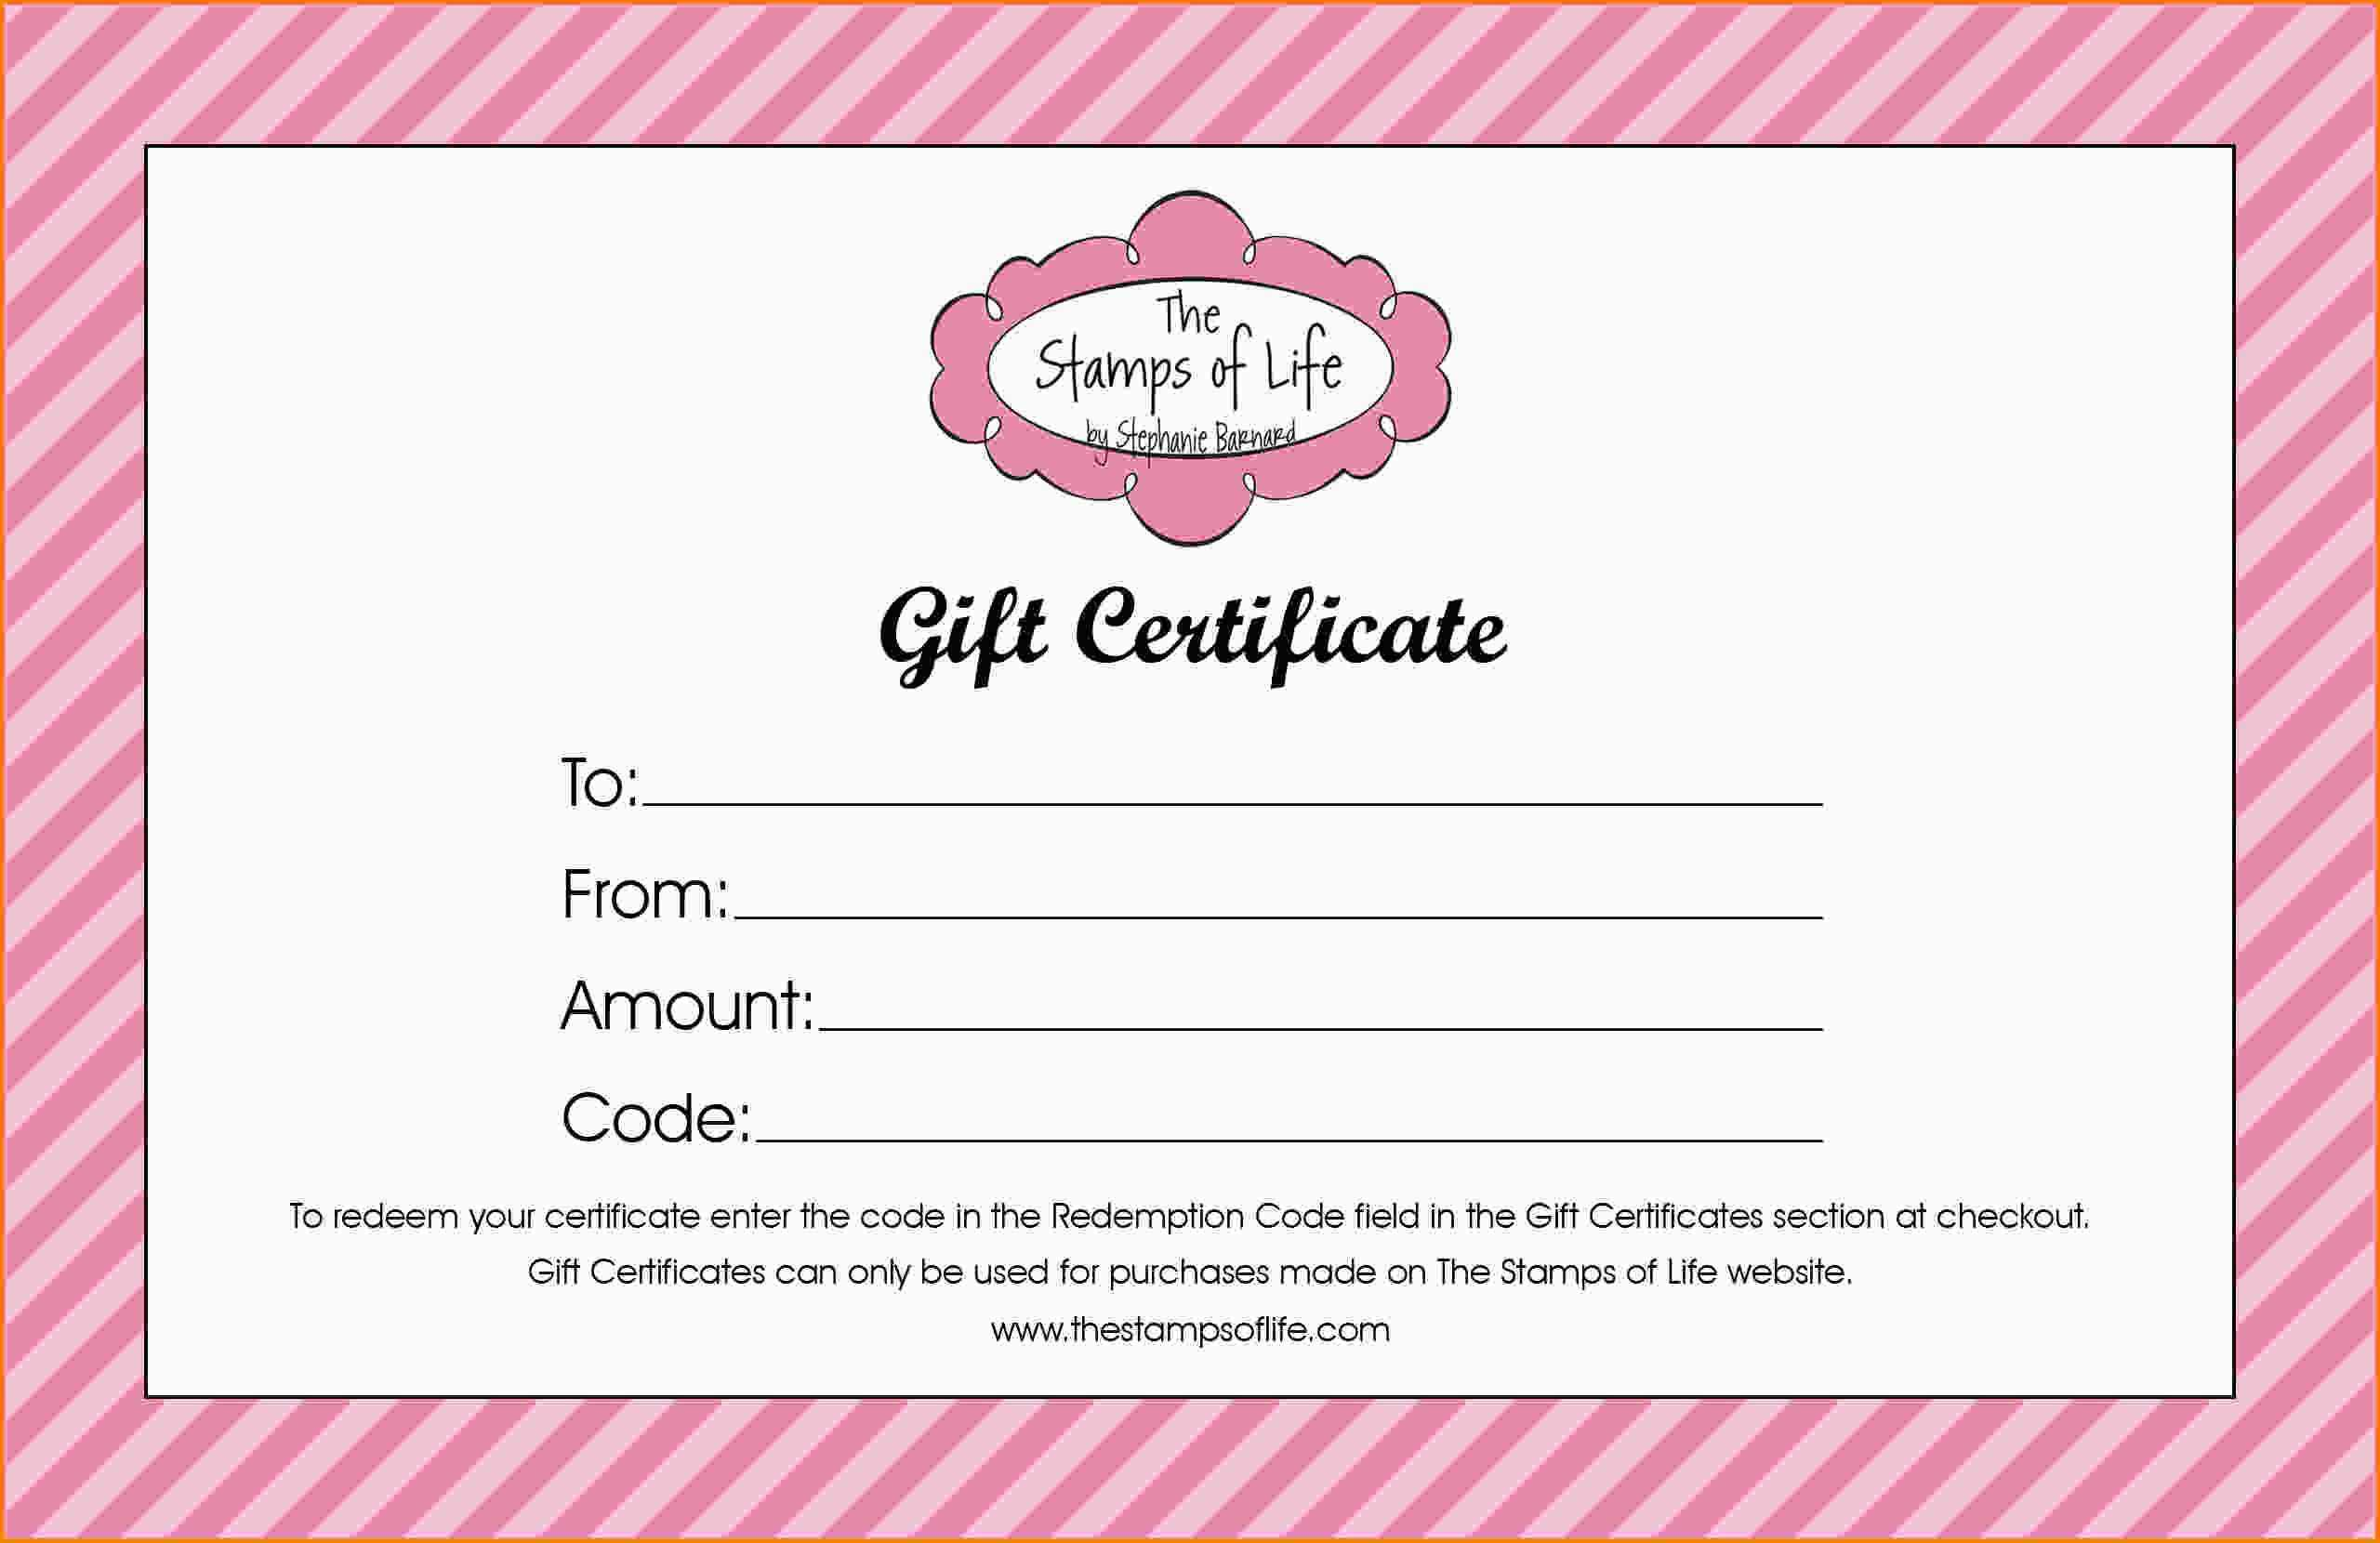 011 Free Printable Gift Certificates Online For Birthday In Pink Gift Certificate Template